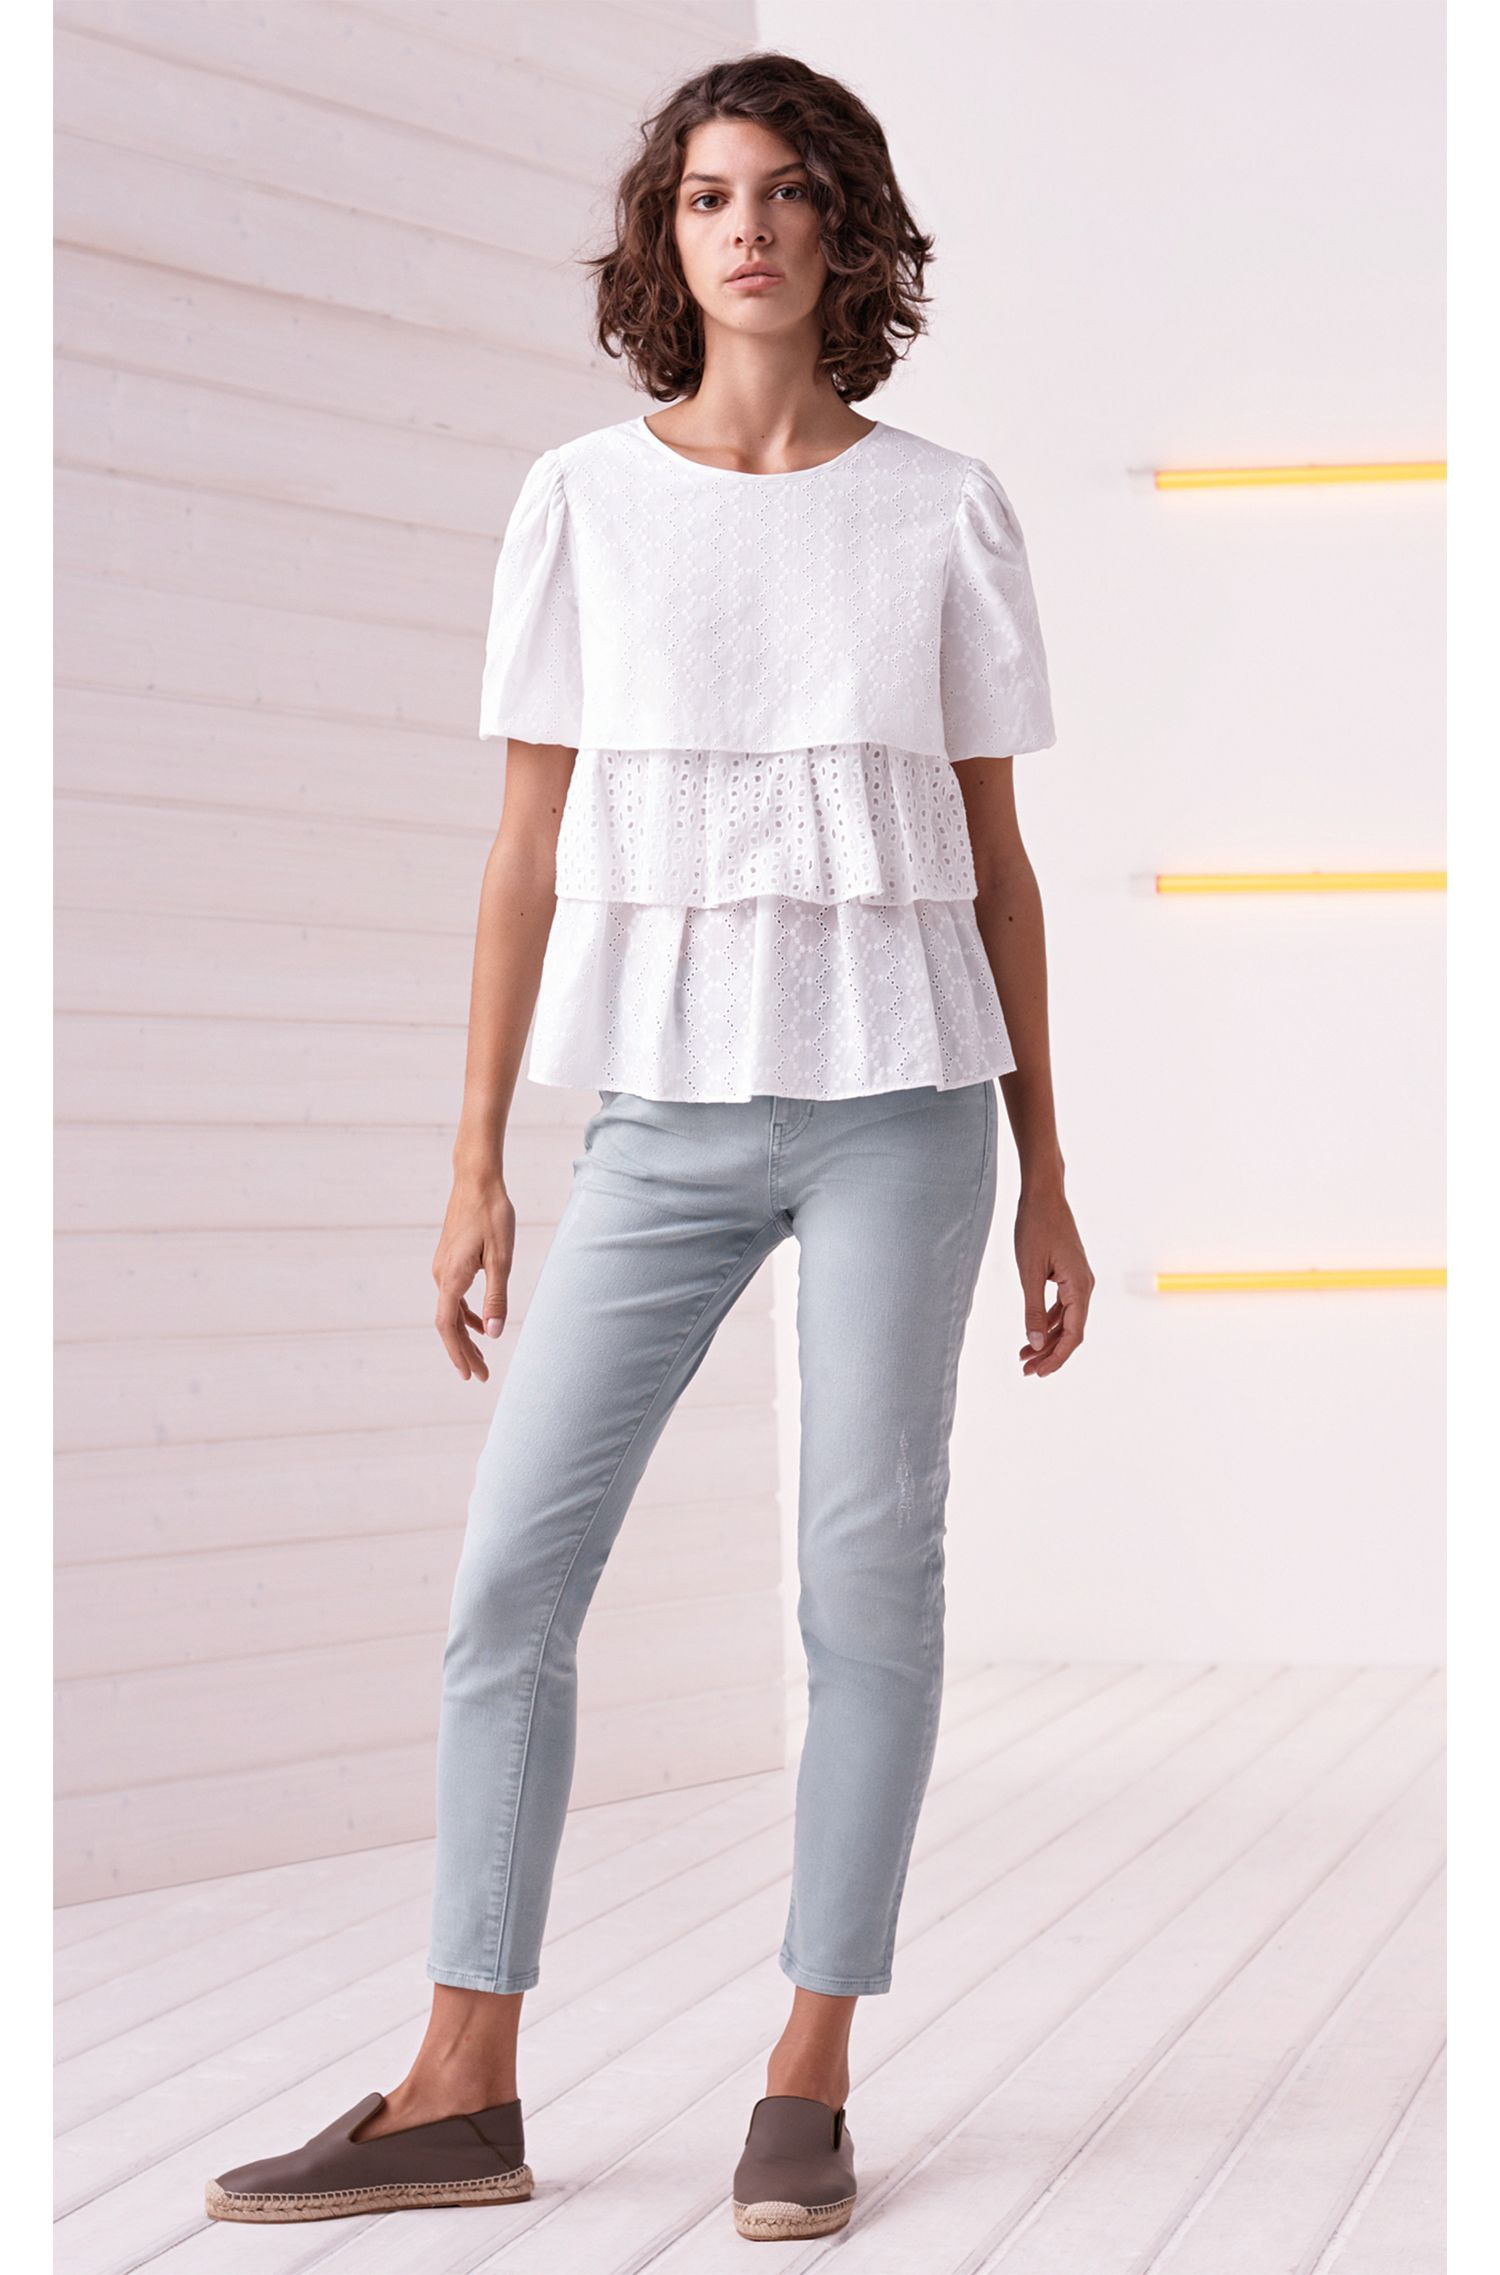 Tiered broderie anglaise top in cotton voile